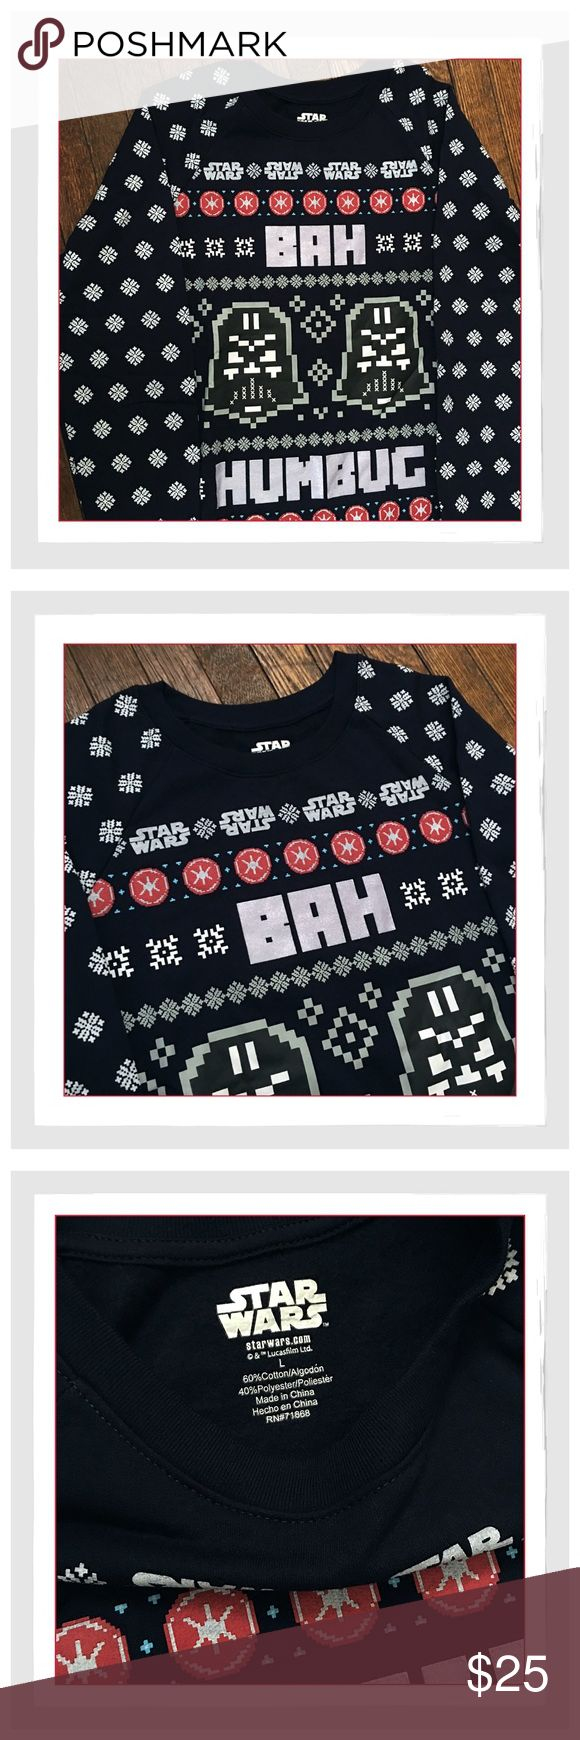 ✨Star Wars Fun Holiday Christmas Sweatshirt✨ ✨Star Wars Fun Holiday Christmas Sweatshirt✨Fun Sweatshirt For The Upcoming Holiday Season Especially In Anticipation Of The Newest Star Wars Movie Release In December 2017✨60% Cotton/40% Polyester✨Grab One For Yourself Or Your Star Wars Fans✨NEW✨ Boutique Tops Sweatshirts & Hoodies